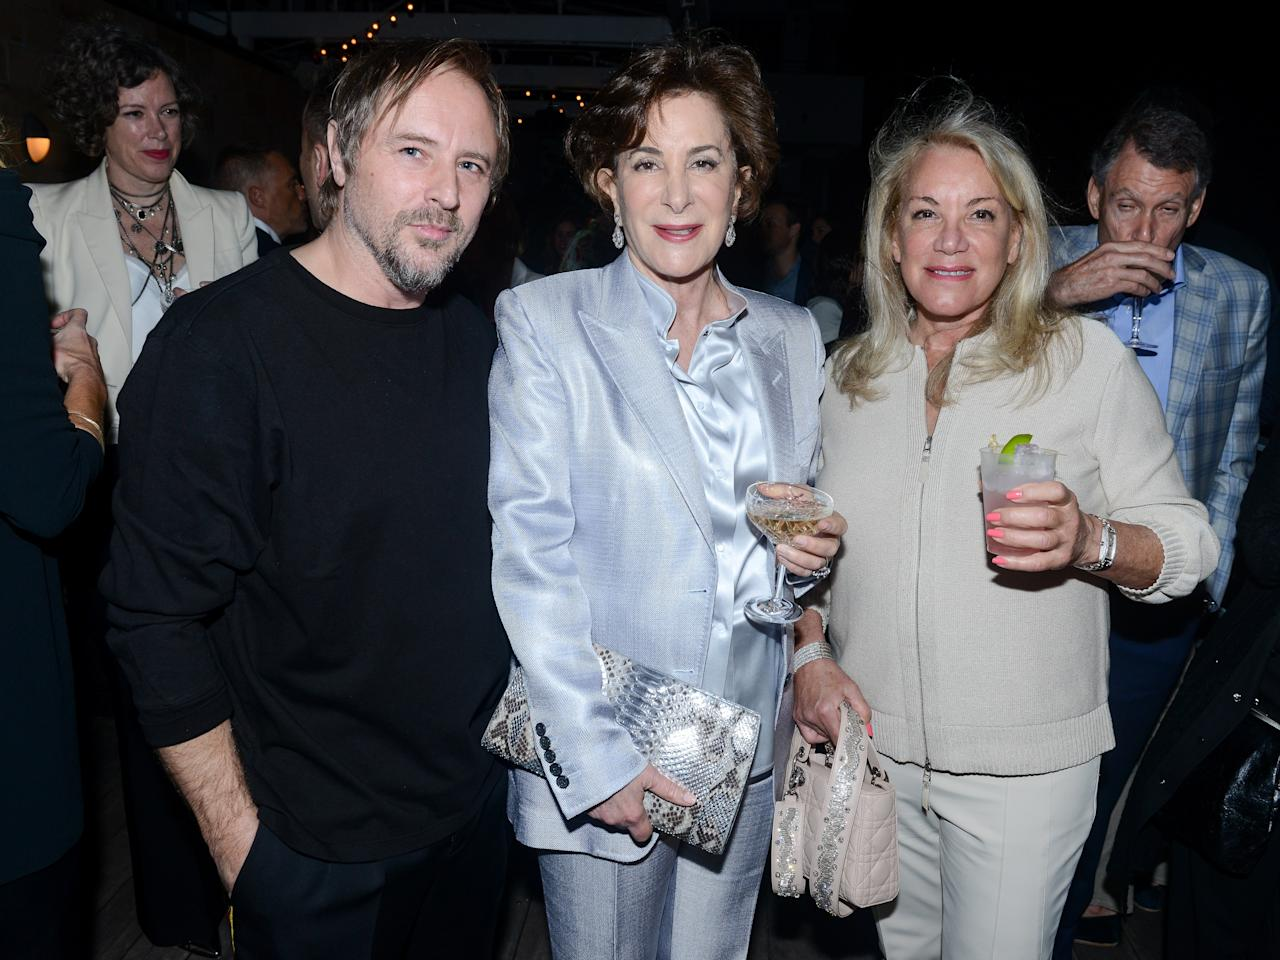 Sterling Ruby, Ray Ellen Yarkin, and Barbara Herzberg attend ICA Dinner For Sterling Ruby at Soho Beach House.